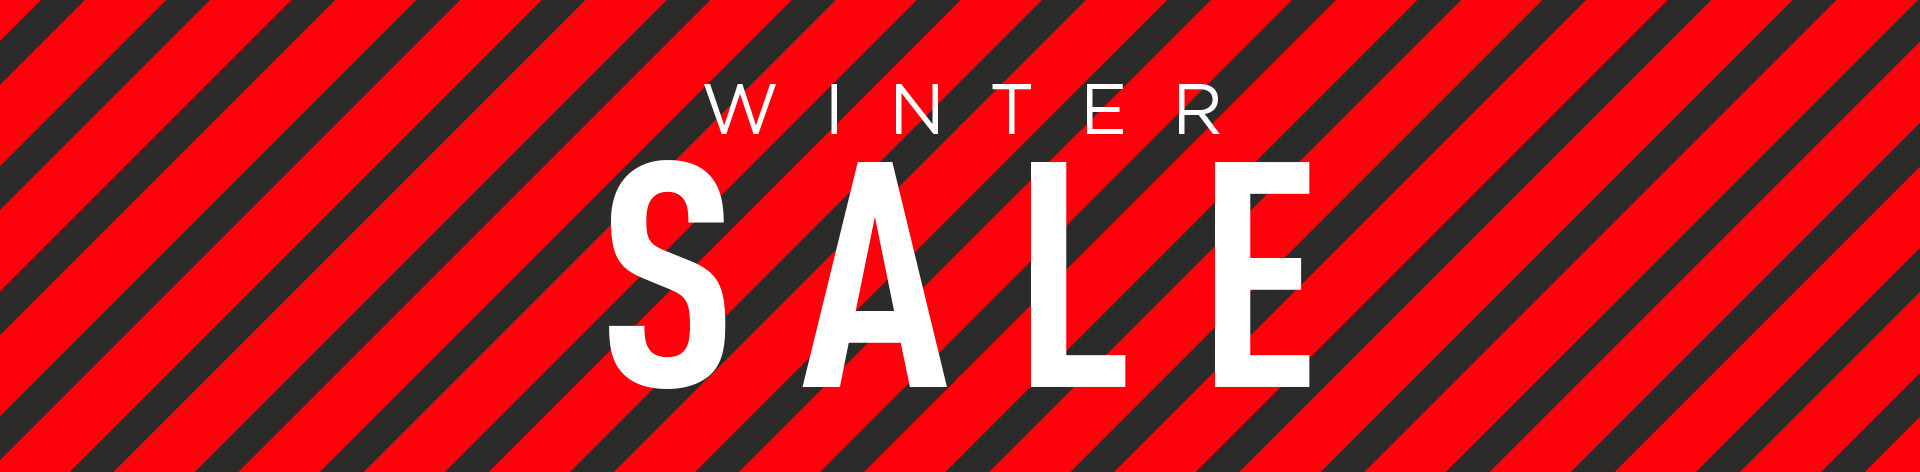 Dainese Winter Sale 2020 - Winter Sports